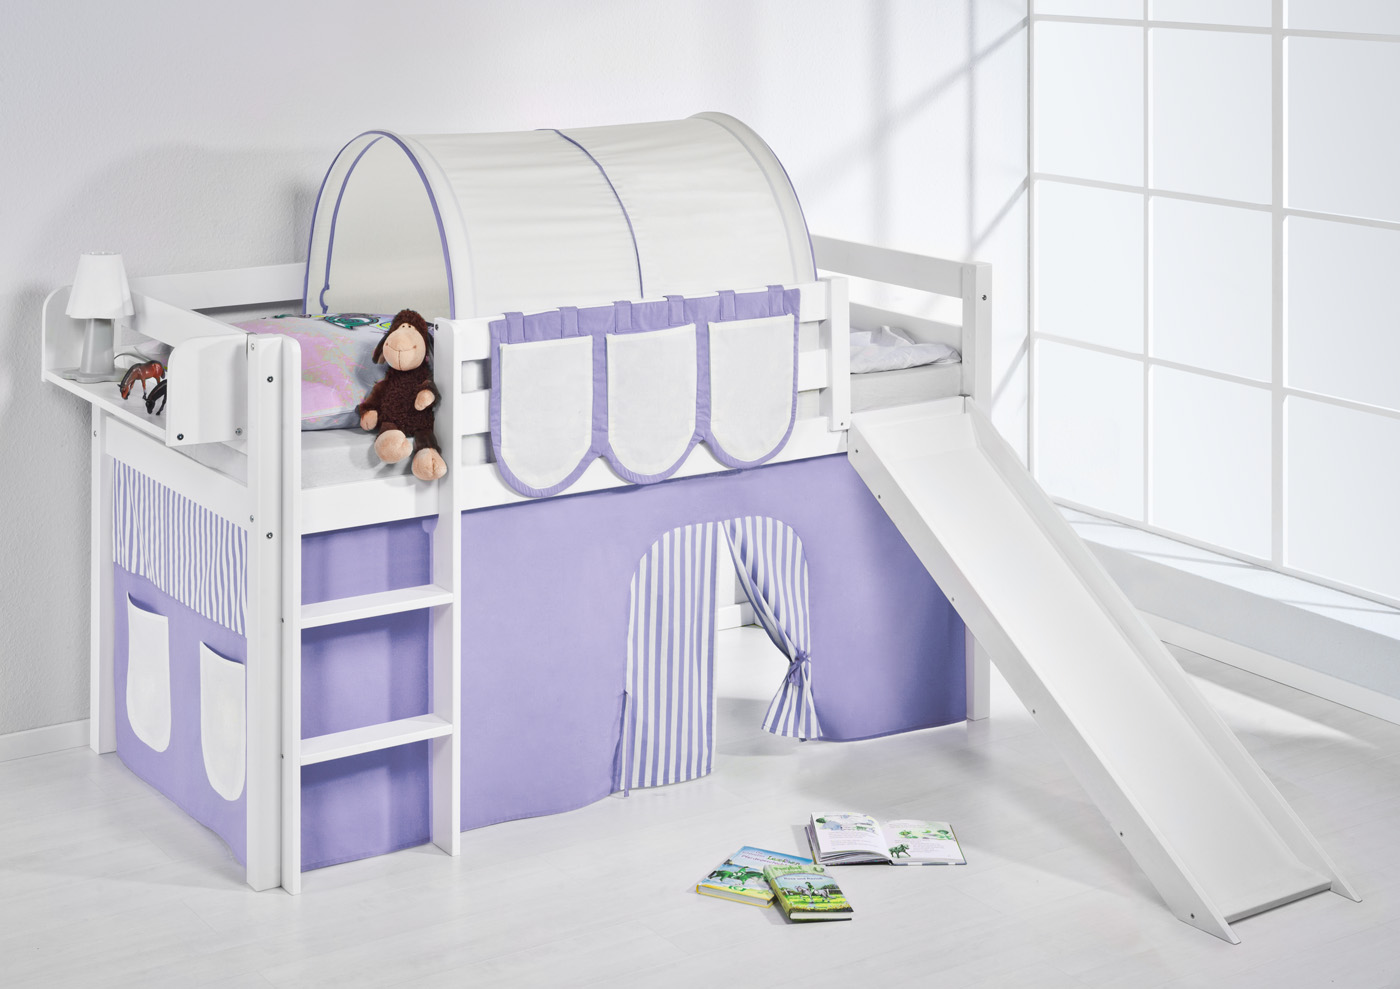 spielbett hochbett kinderbett jelle 190x90 weiss mit. Black Bedroom Furniture Sets. Home Design Ideas